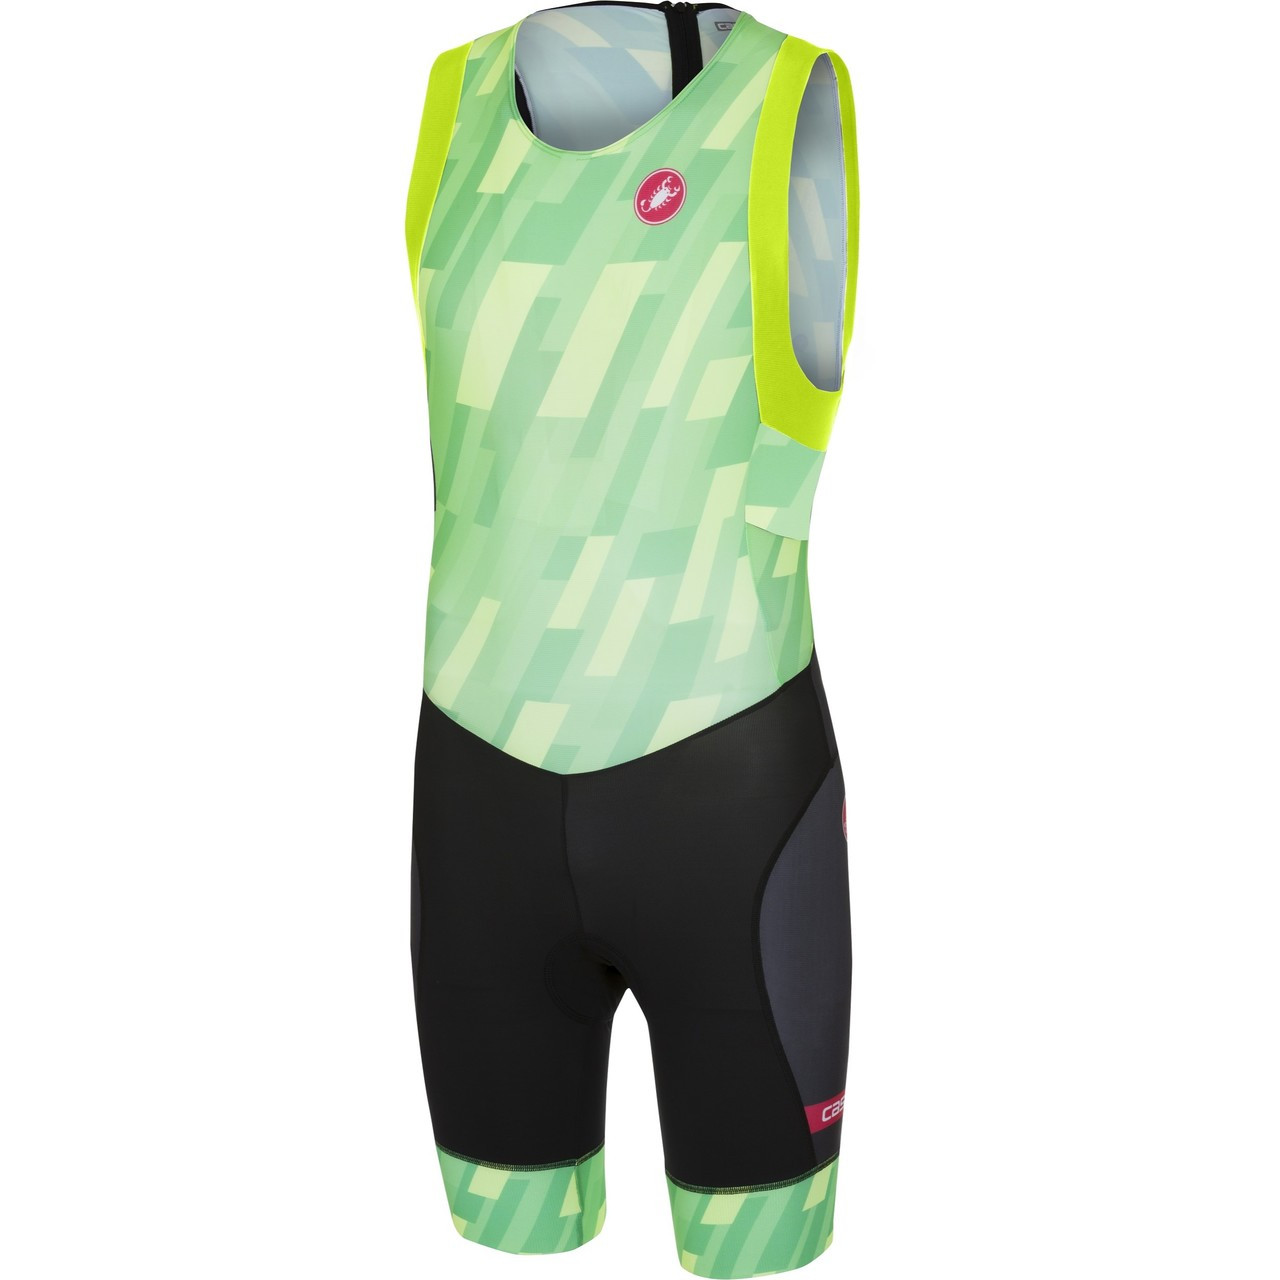 Castelli Men's Short Distance Race Tri Suit - 2019 price